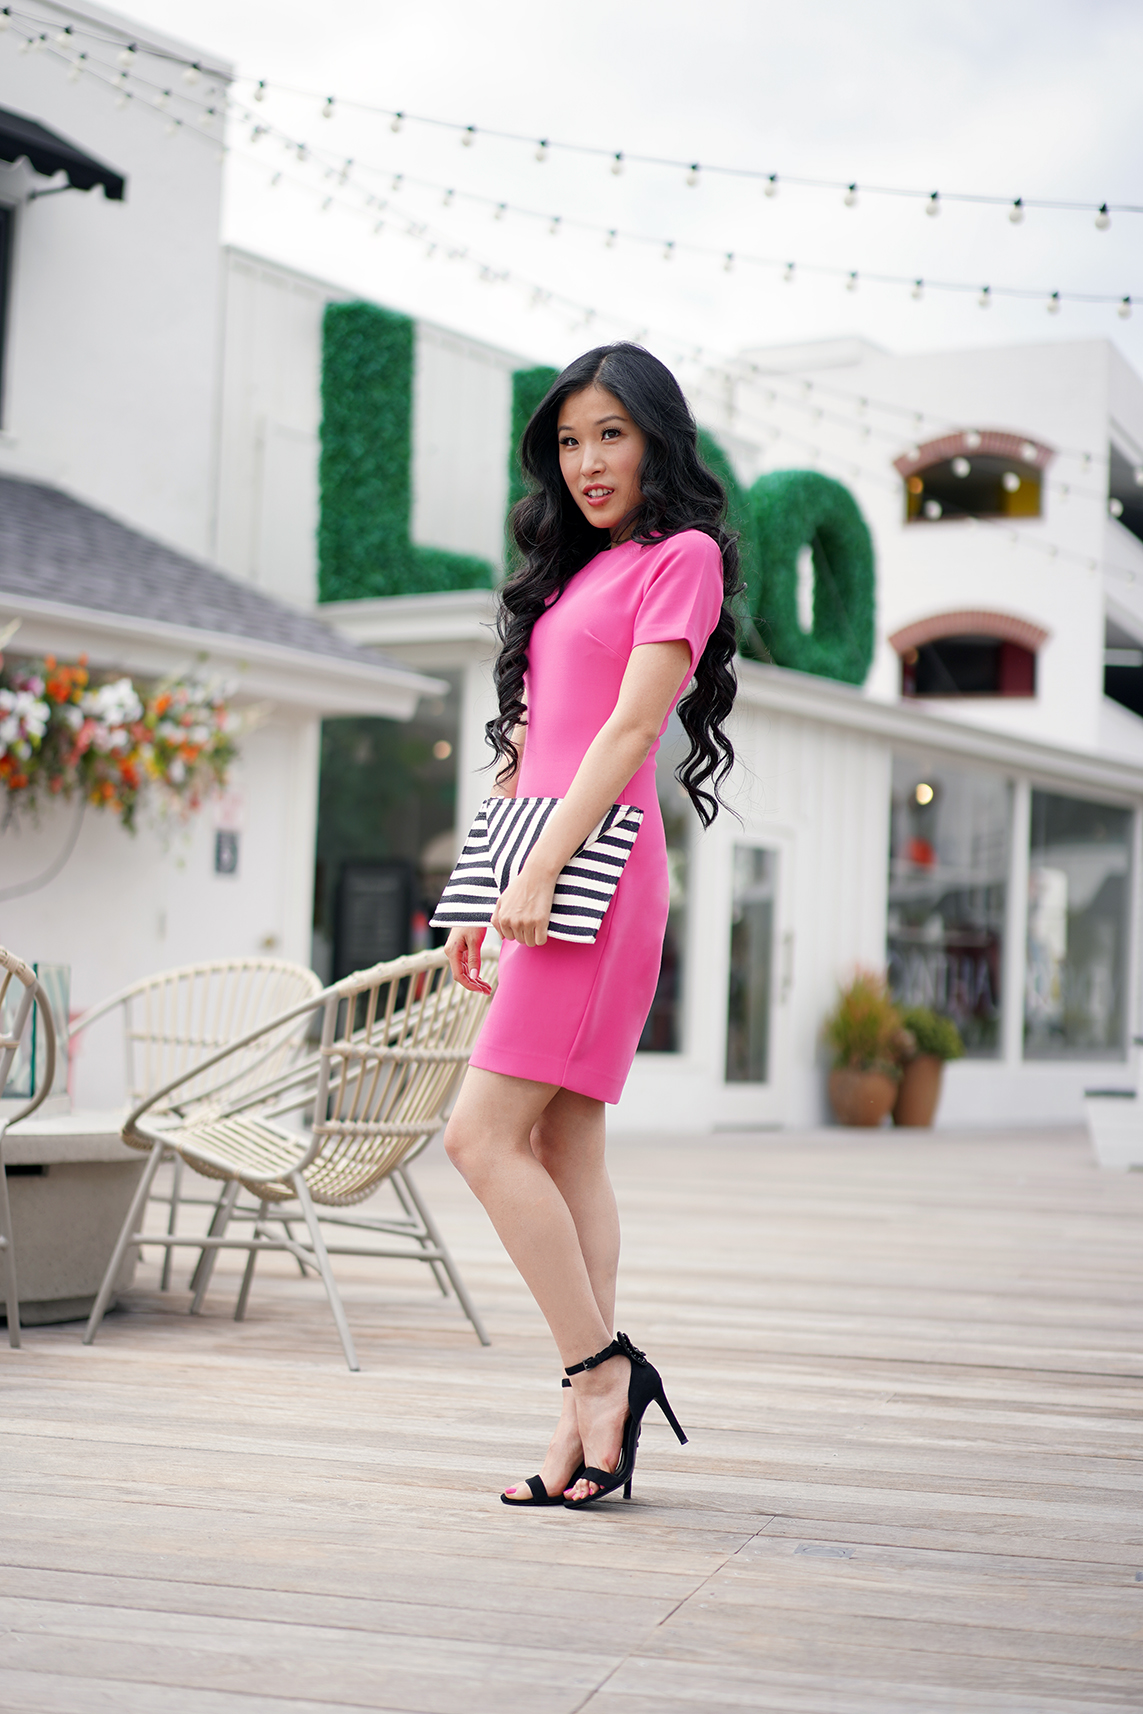 Likely Manhattan Pink Flambe Dress and Moda Luxe Black and White Stripe Clutch